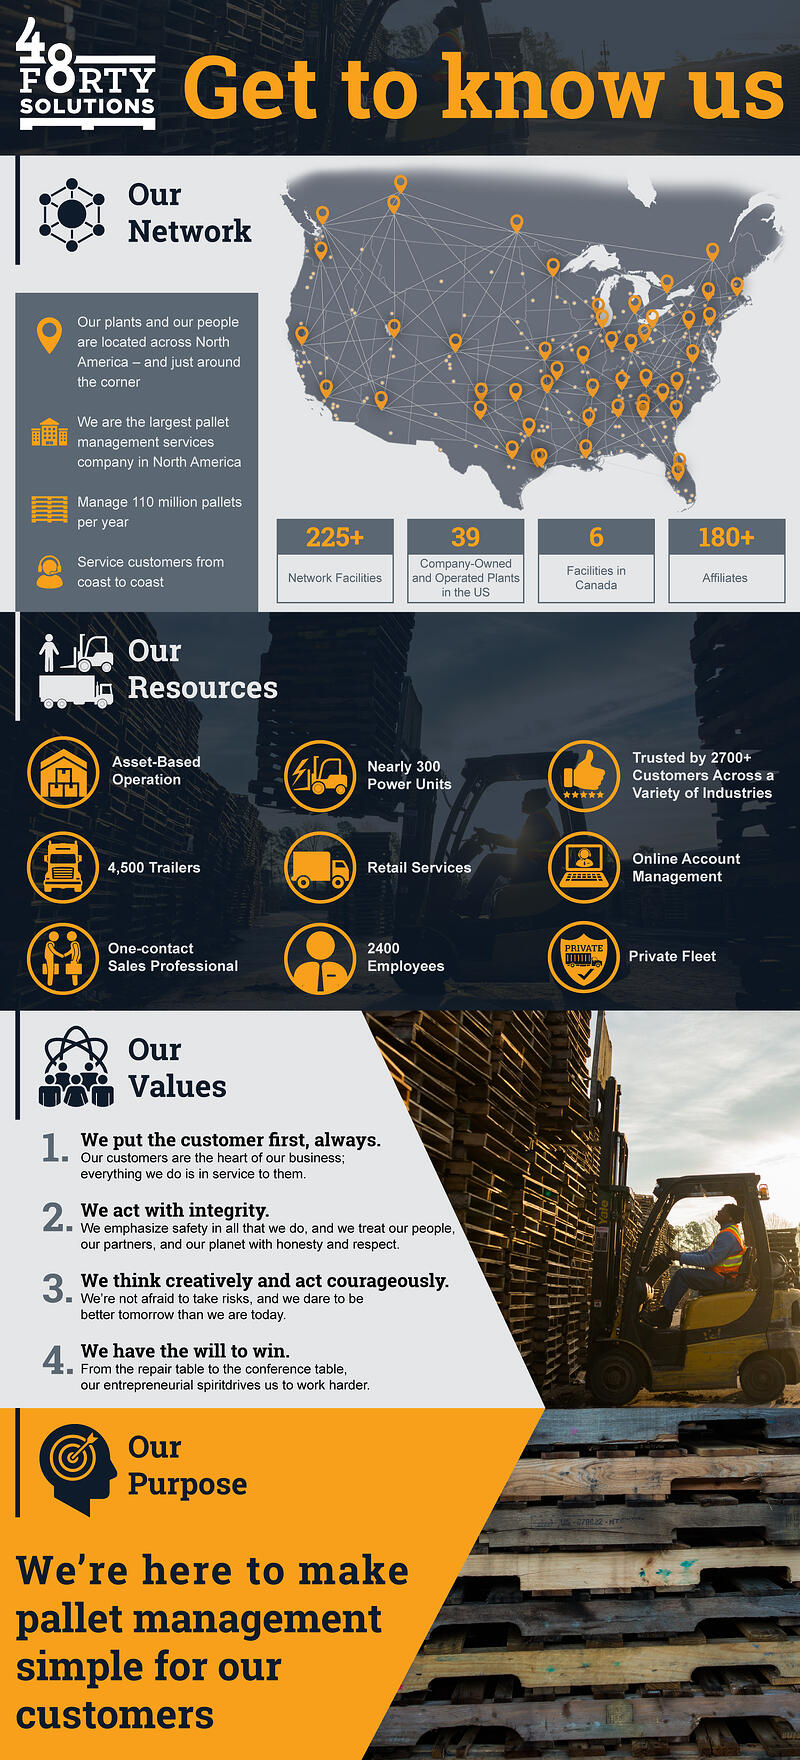 48forty-Solutions-Infographic